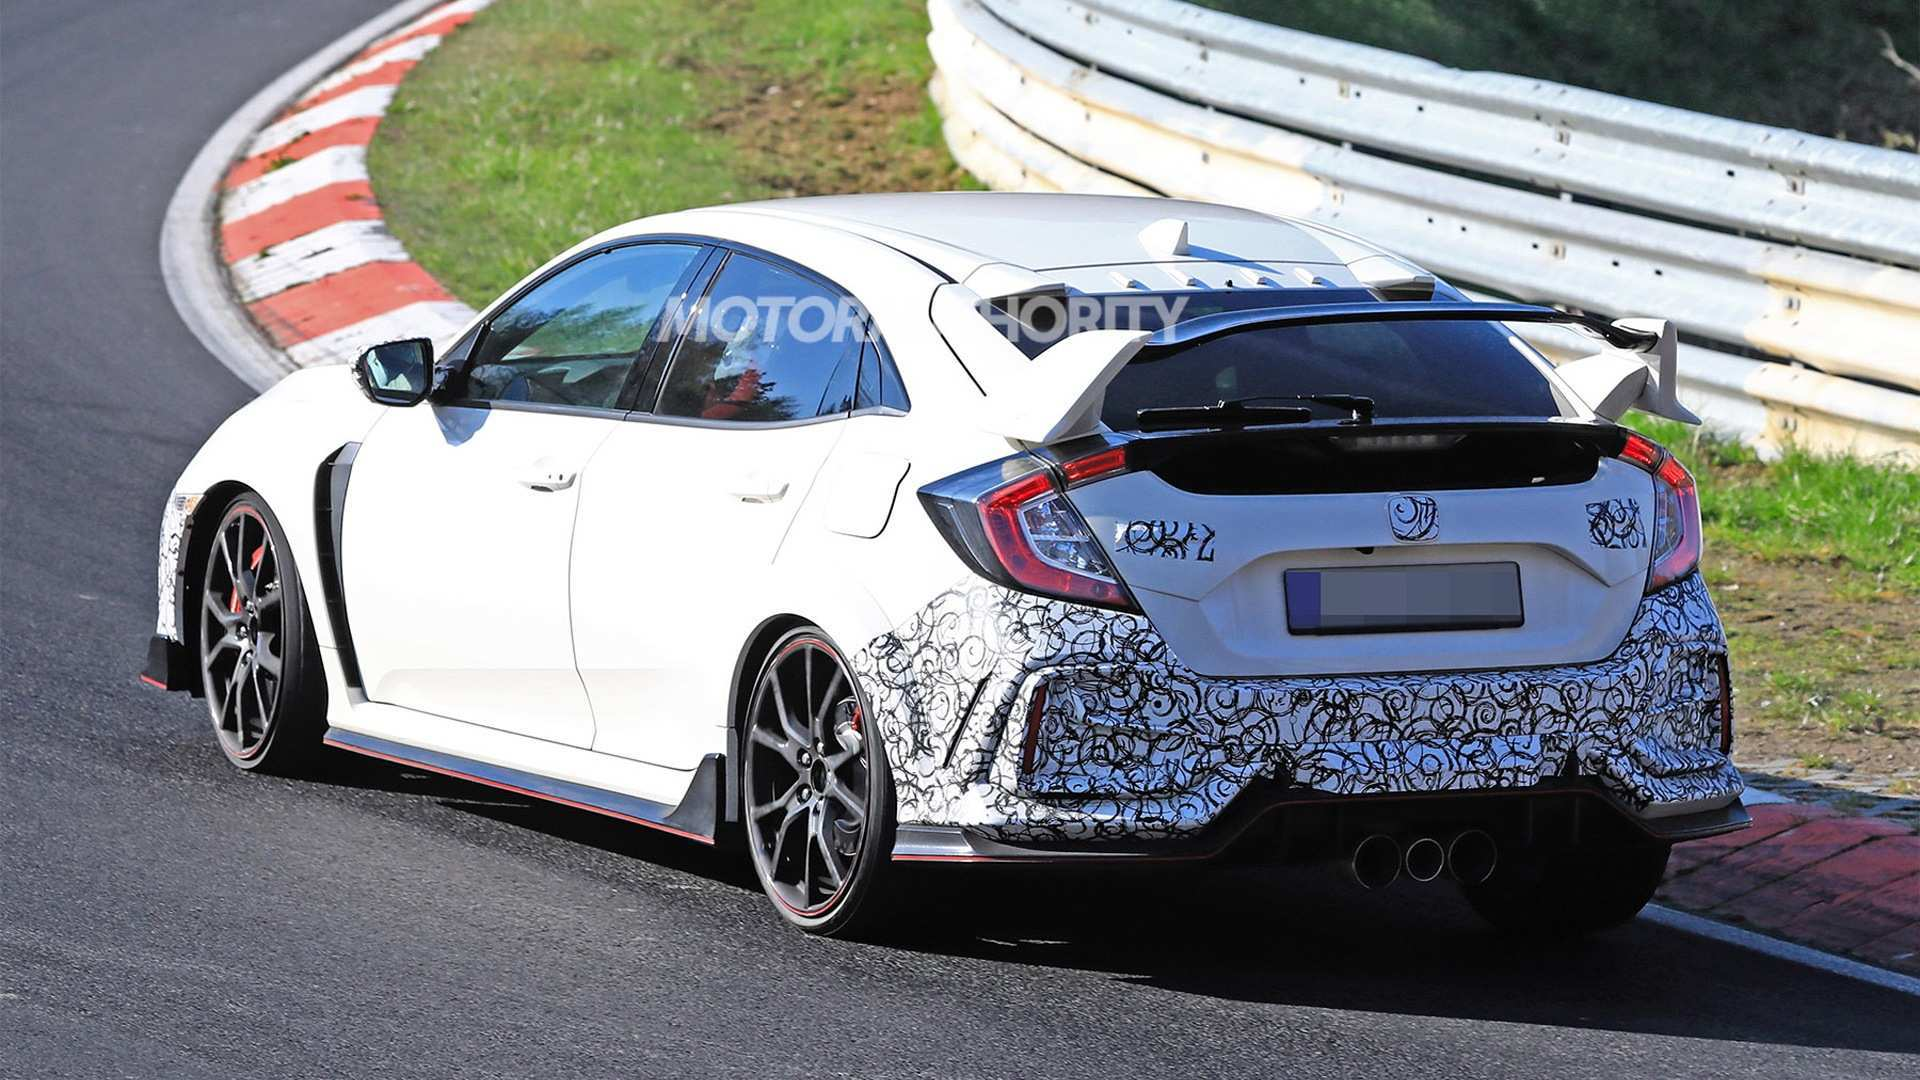 70 The Best 2020 Honda Civic Type R New Concept